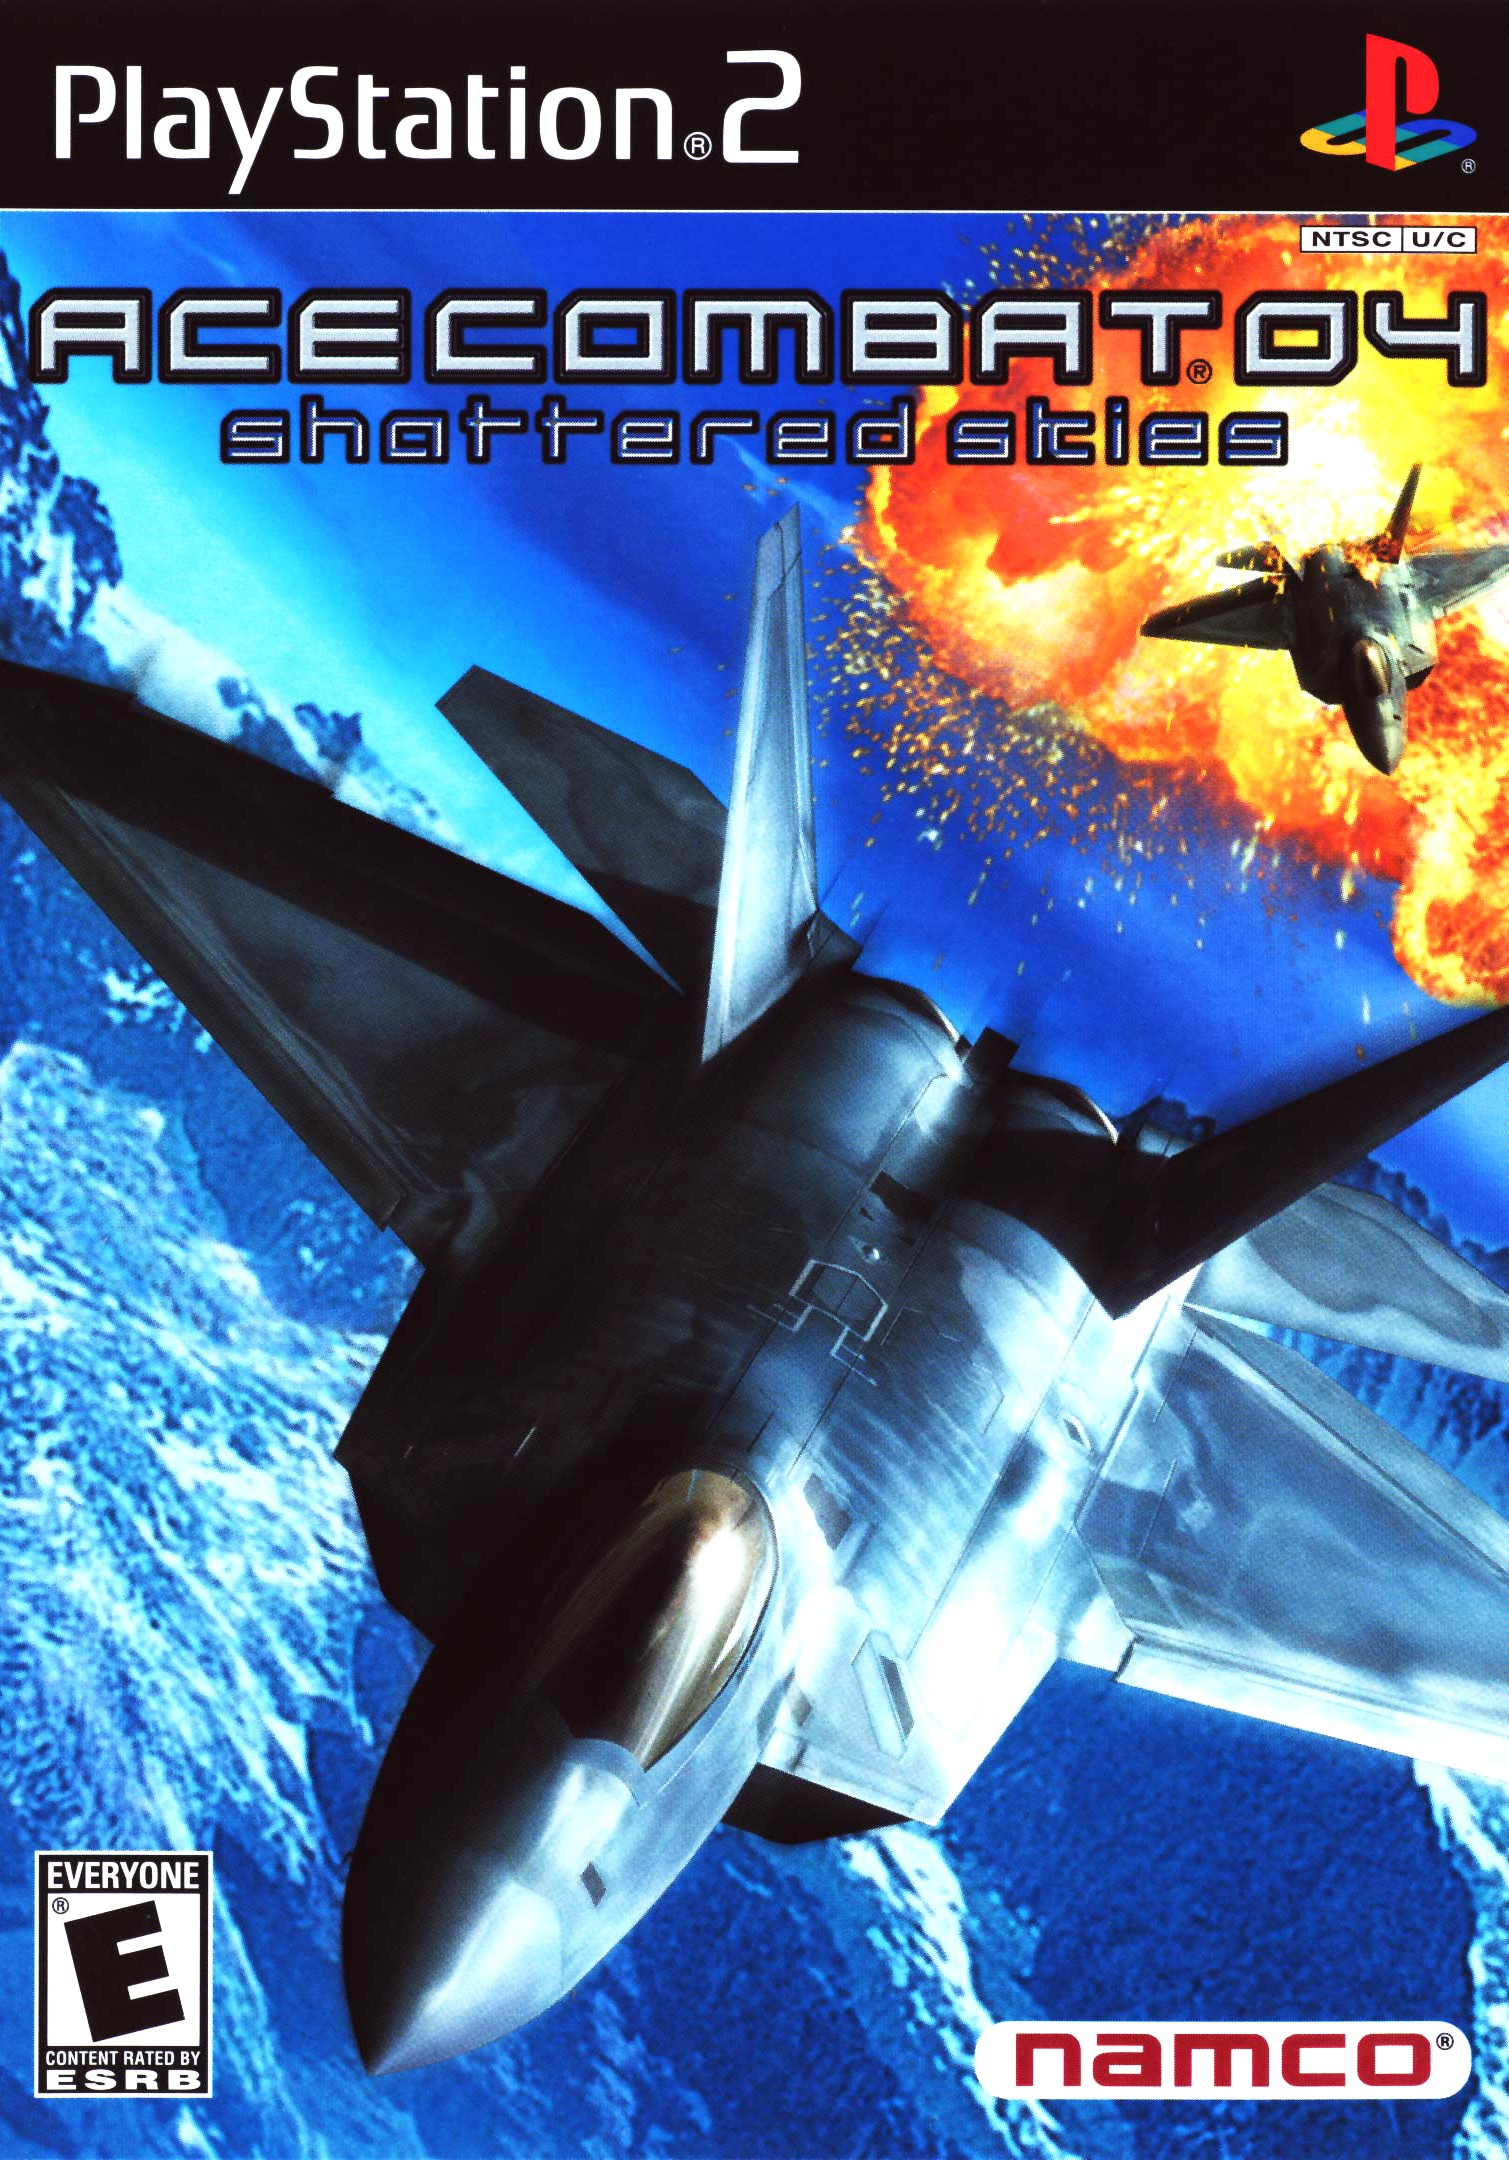 Ace Combat 04 Shattered Skies/PS2